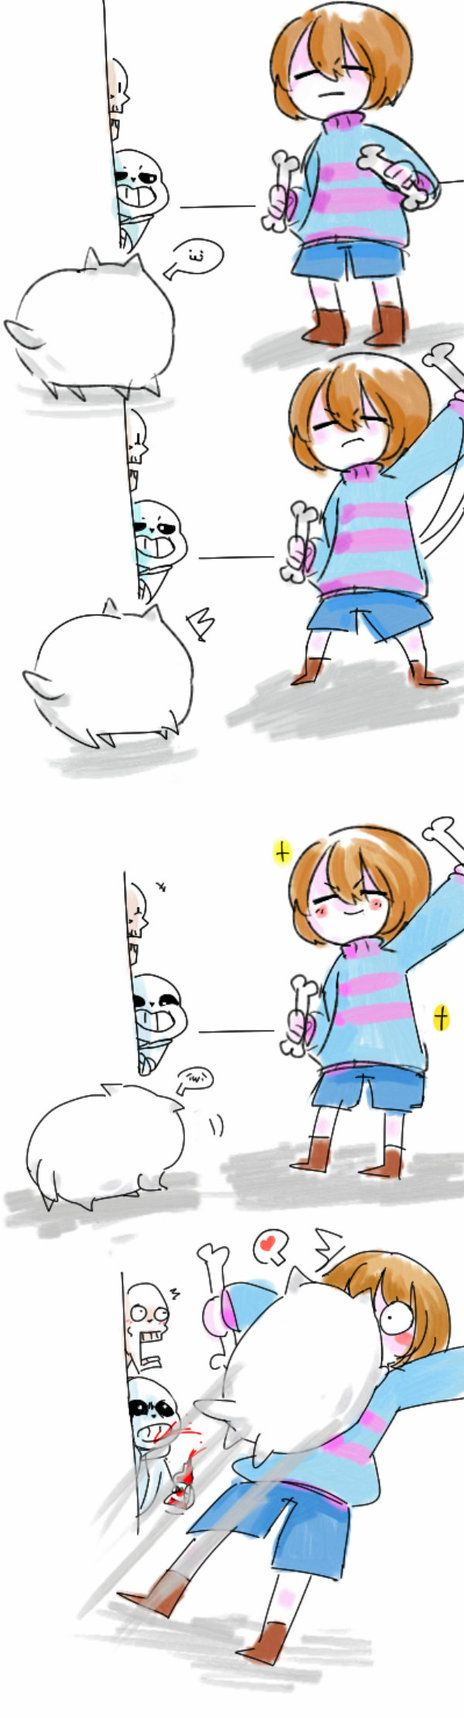 play with dog by huslu | Undertale | Pinterest | Plays, Dog and Frisk